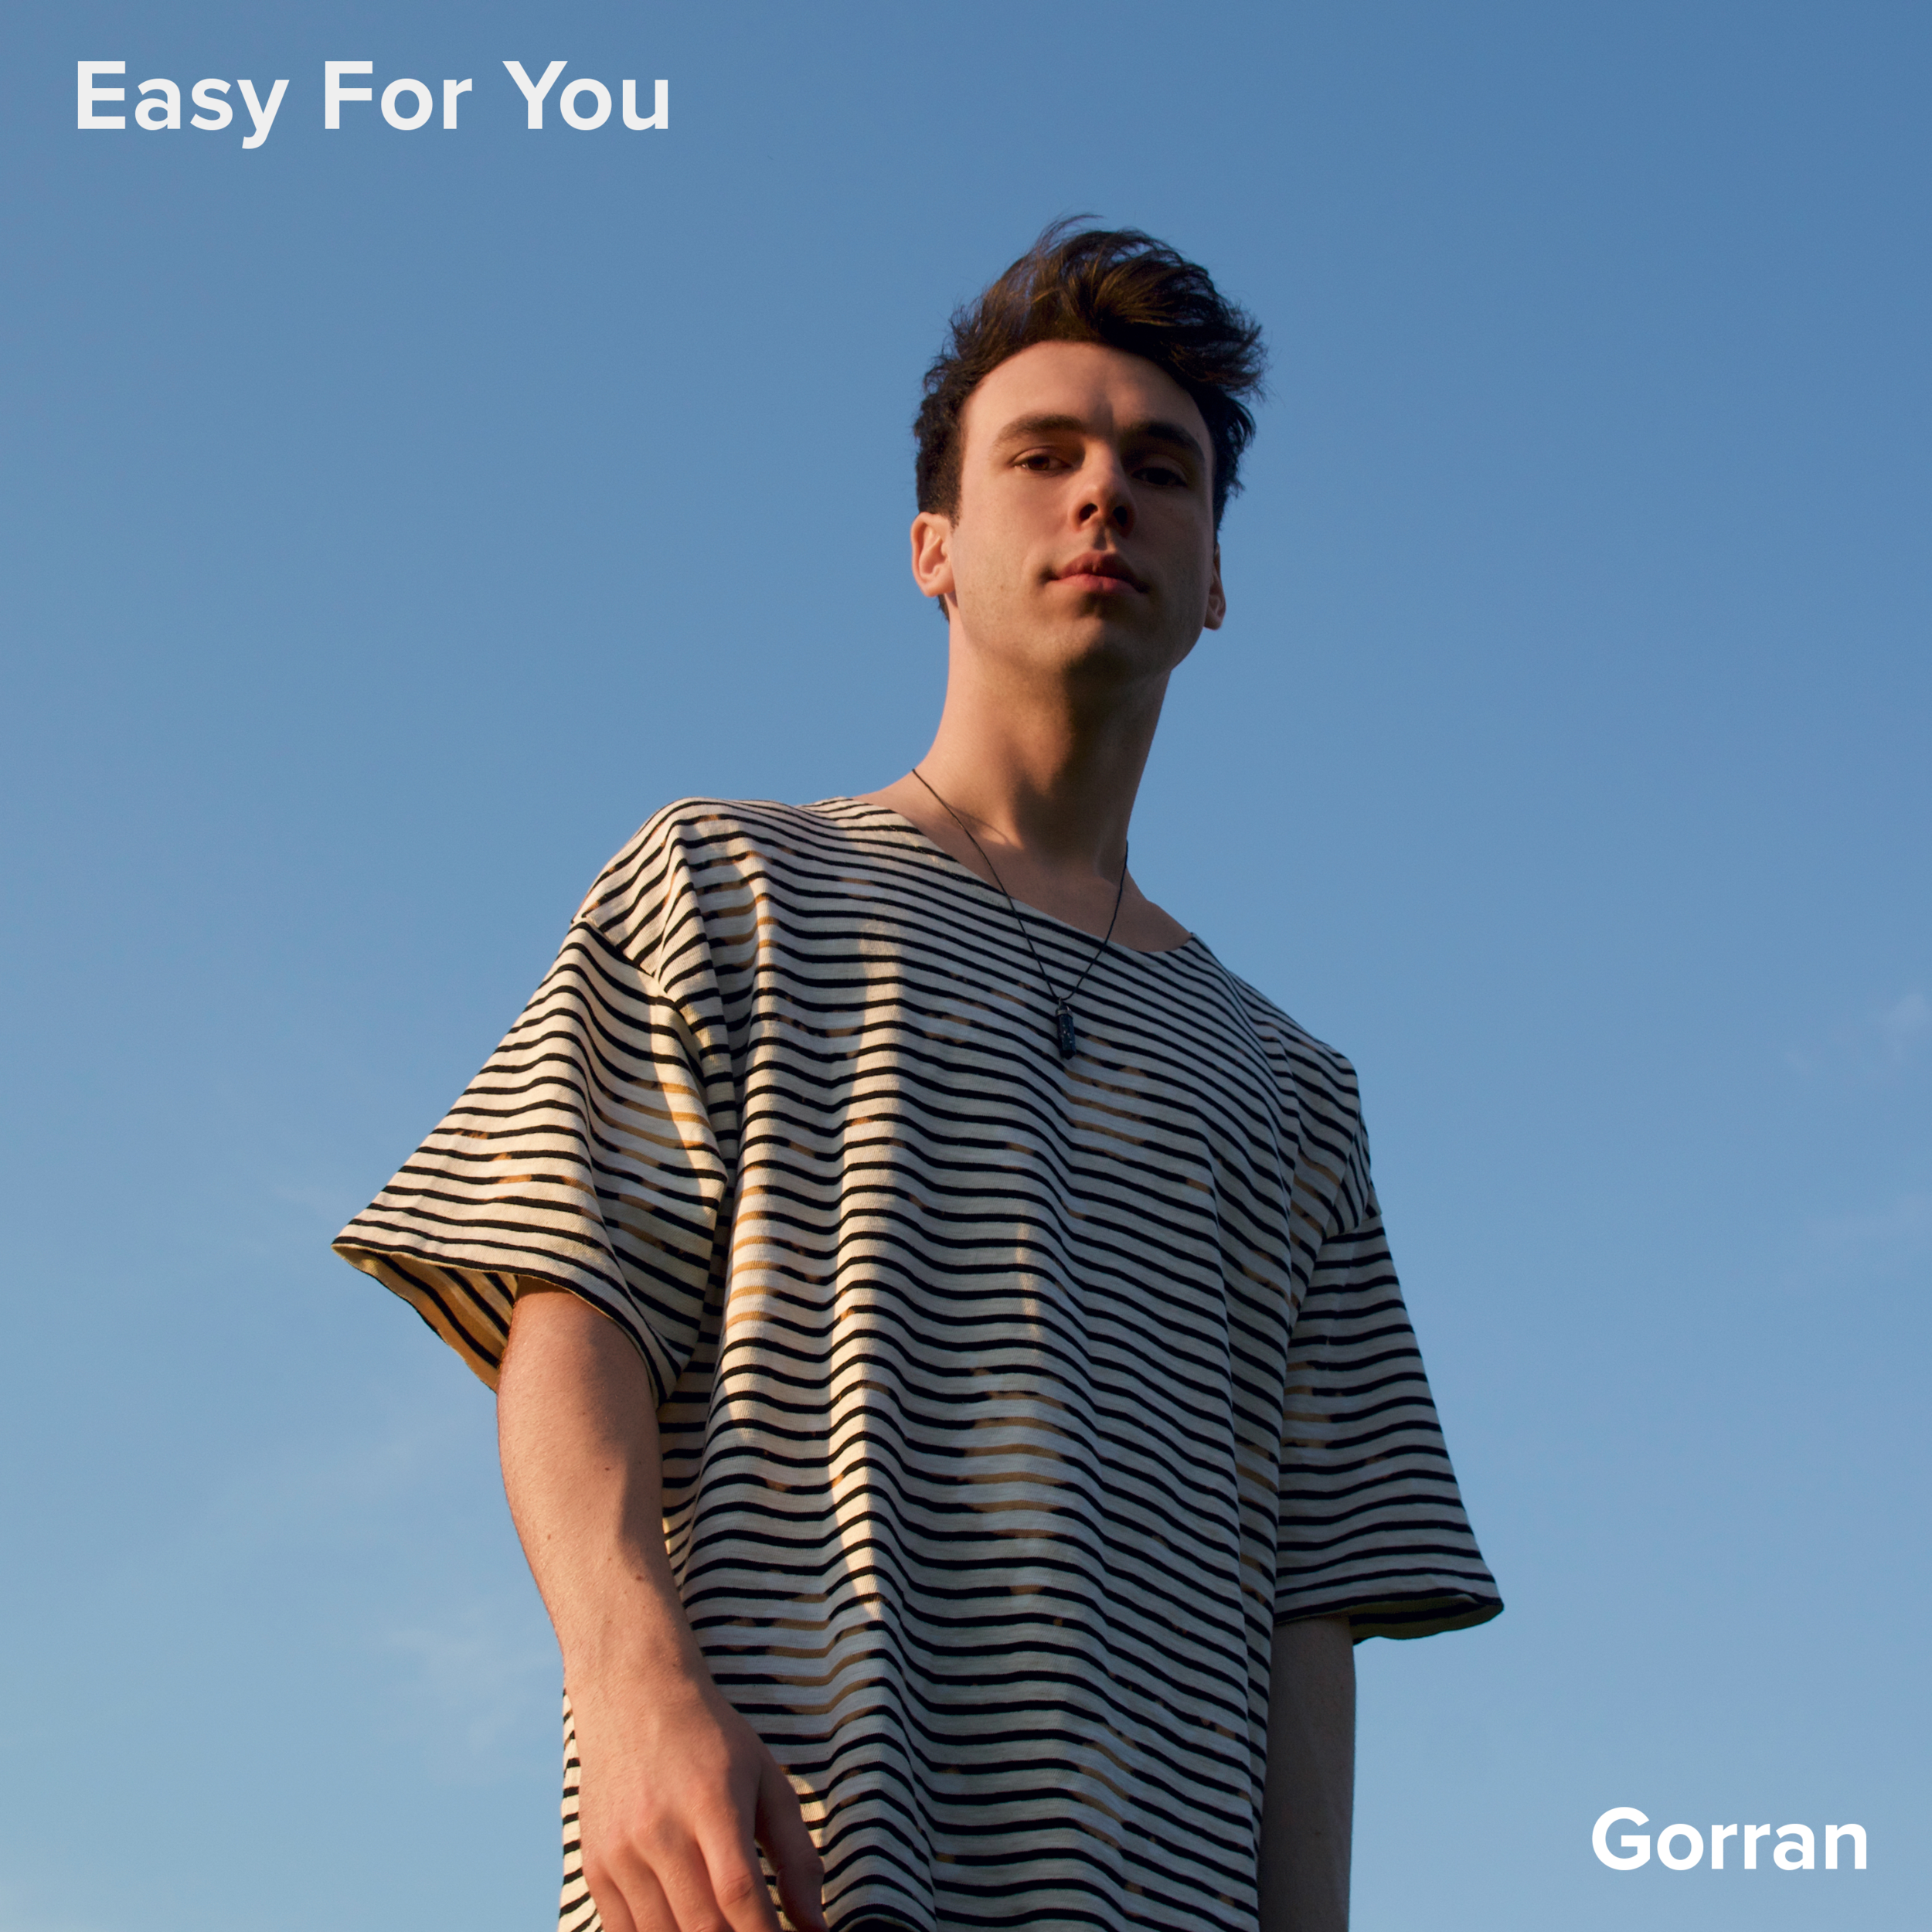 Easy For You - Artwork (Text).png